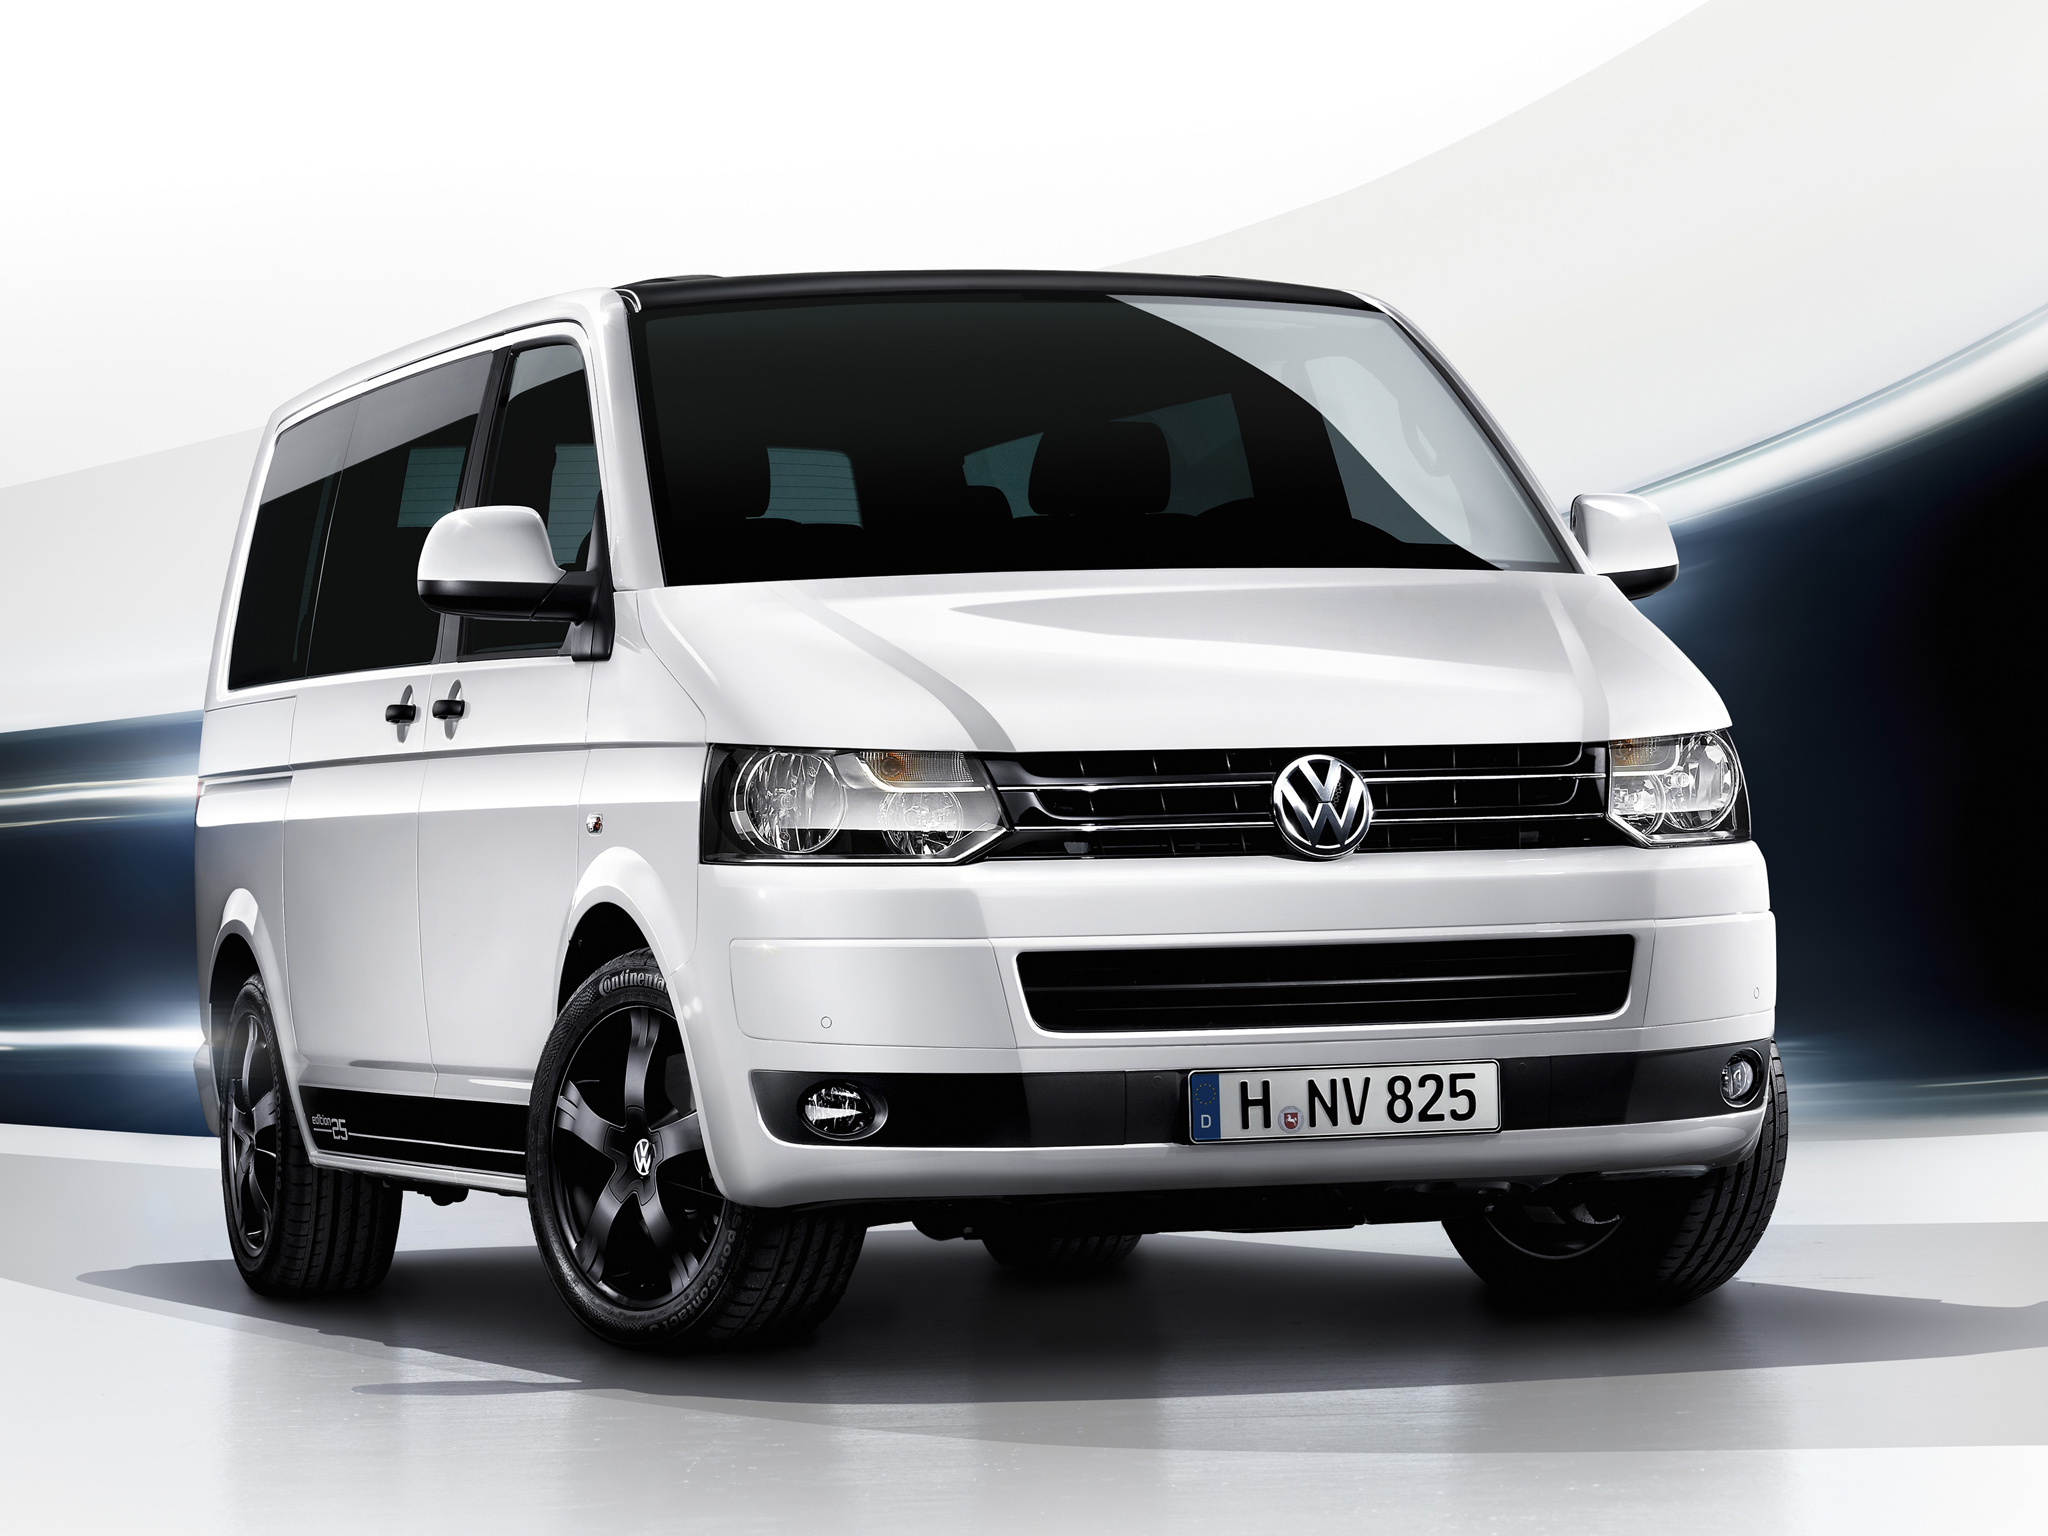 Vw Multivan 20 Tdi Edition 25 T5 Facelift – Frontansicht Picture